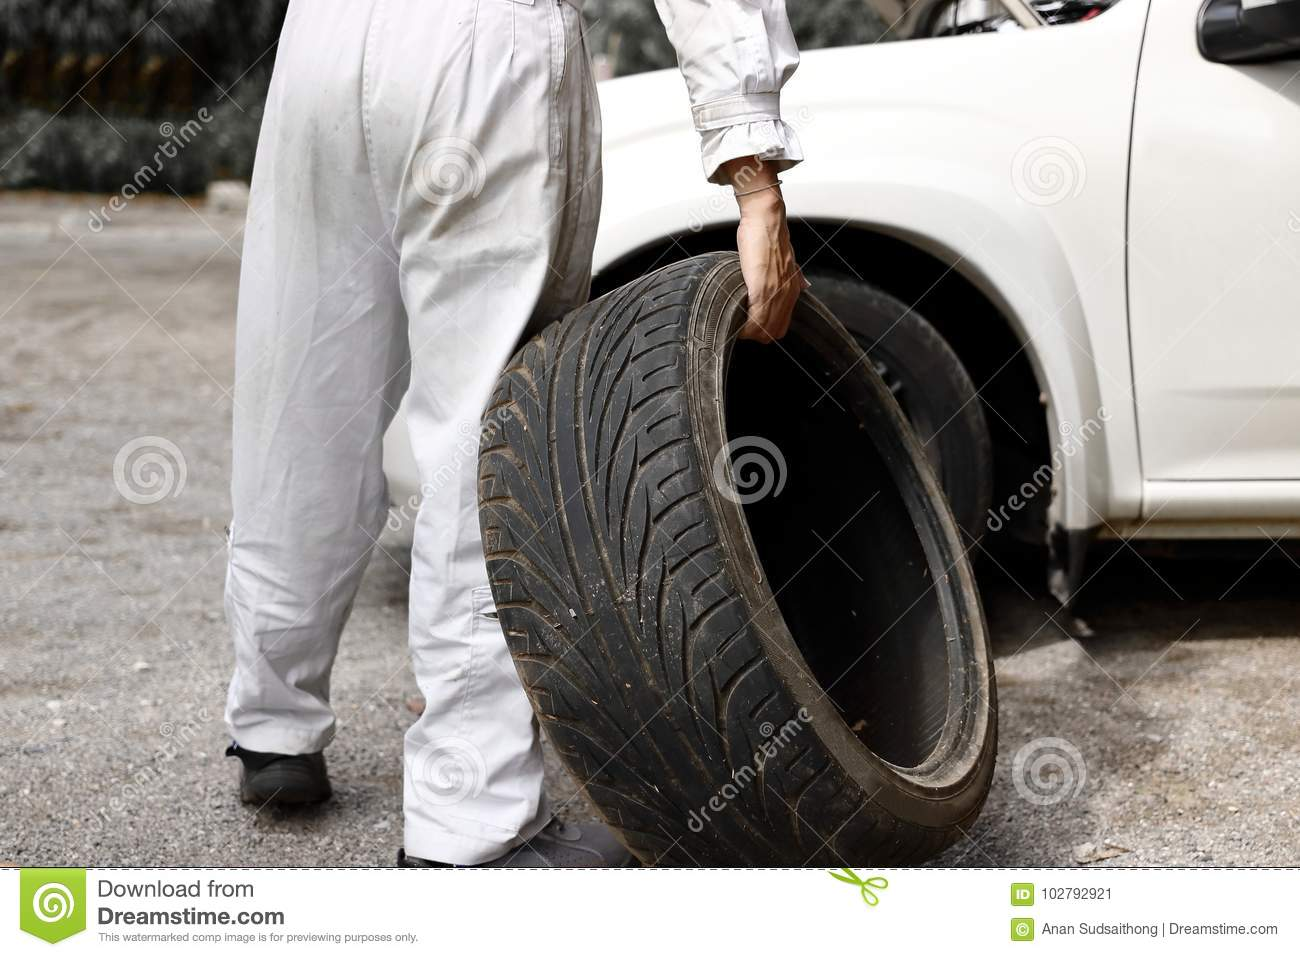 Professional Automotive Mechanic In Uniform Holding Tire For Fixing